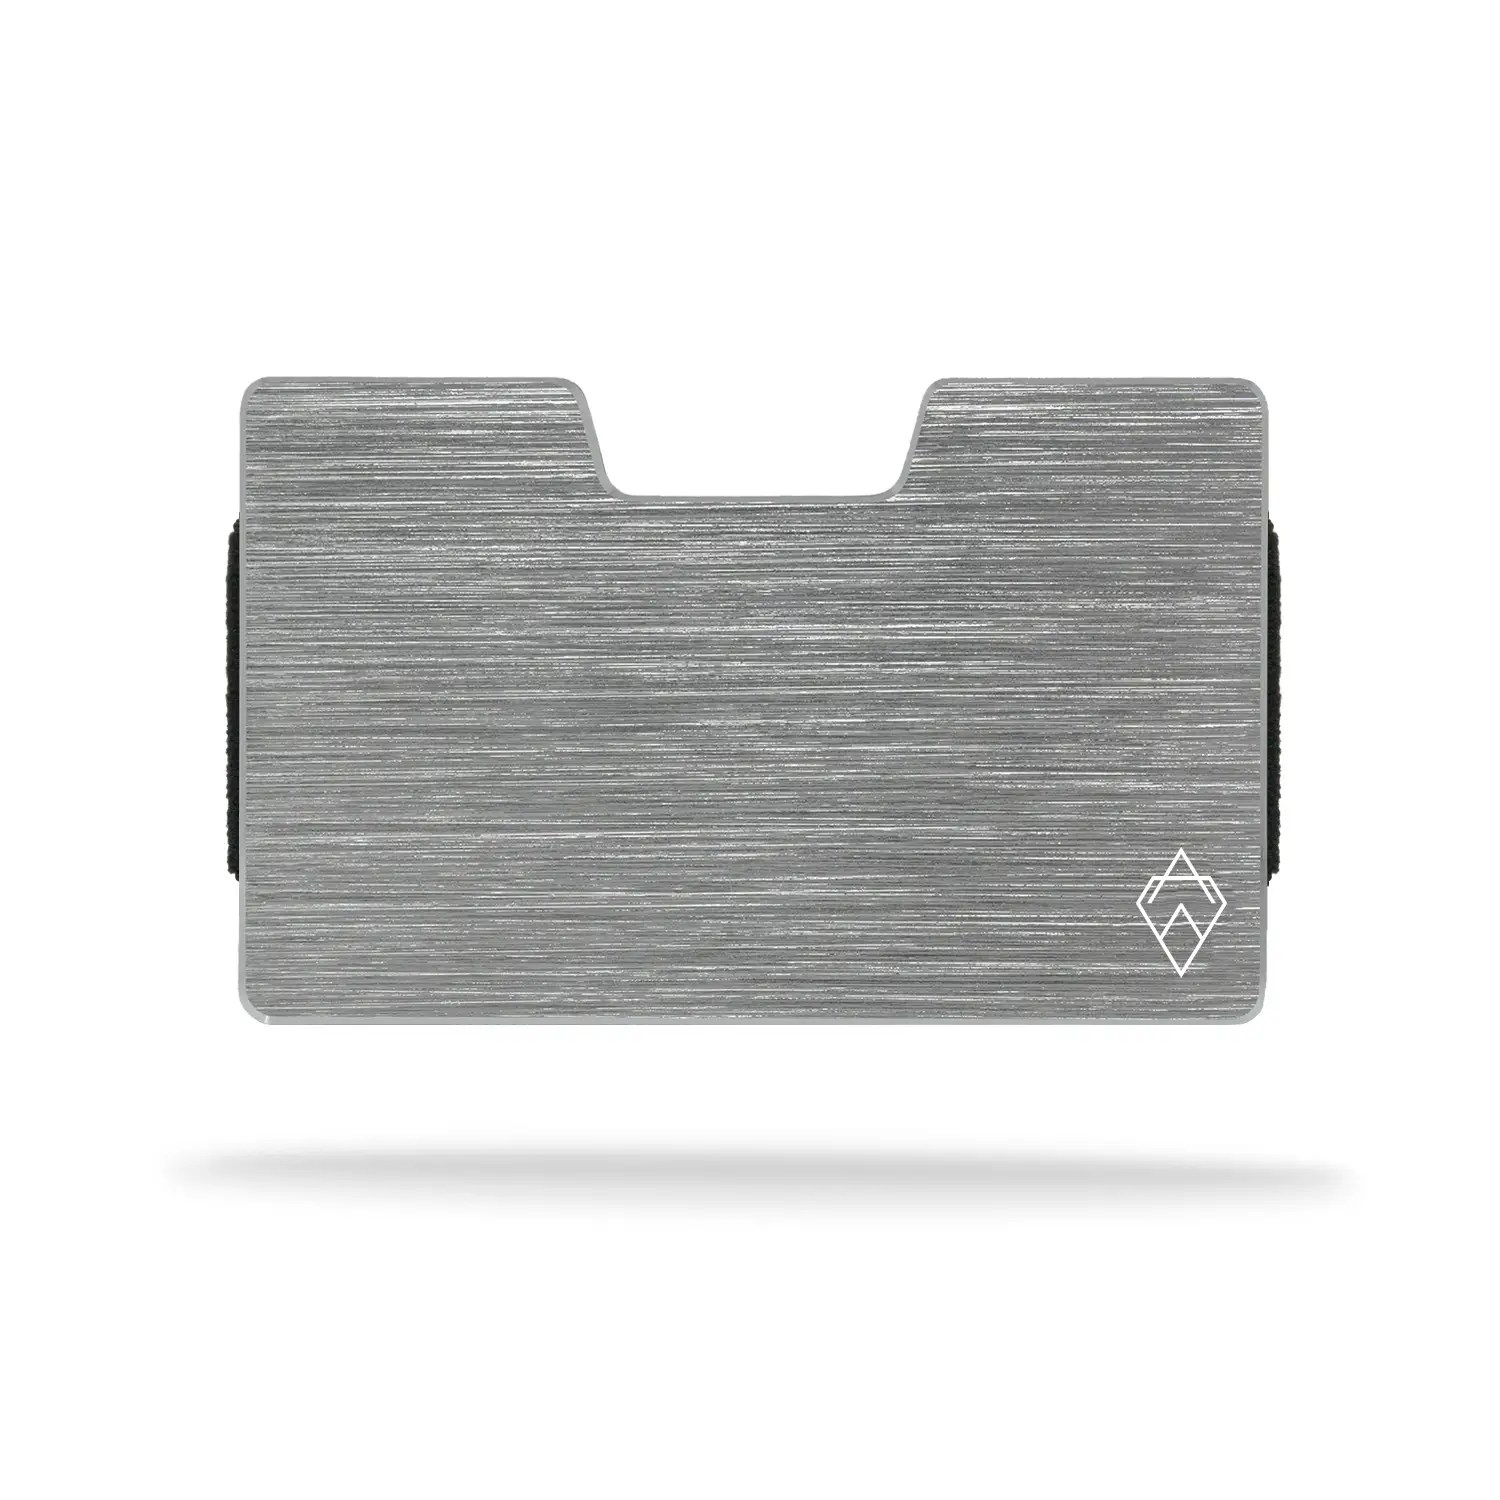 brushed Silver RFID blocking credit card holder wallet with money clip